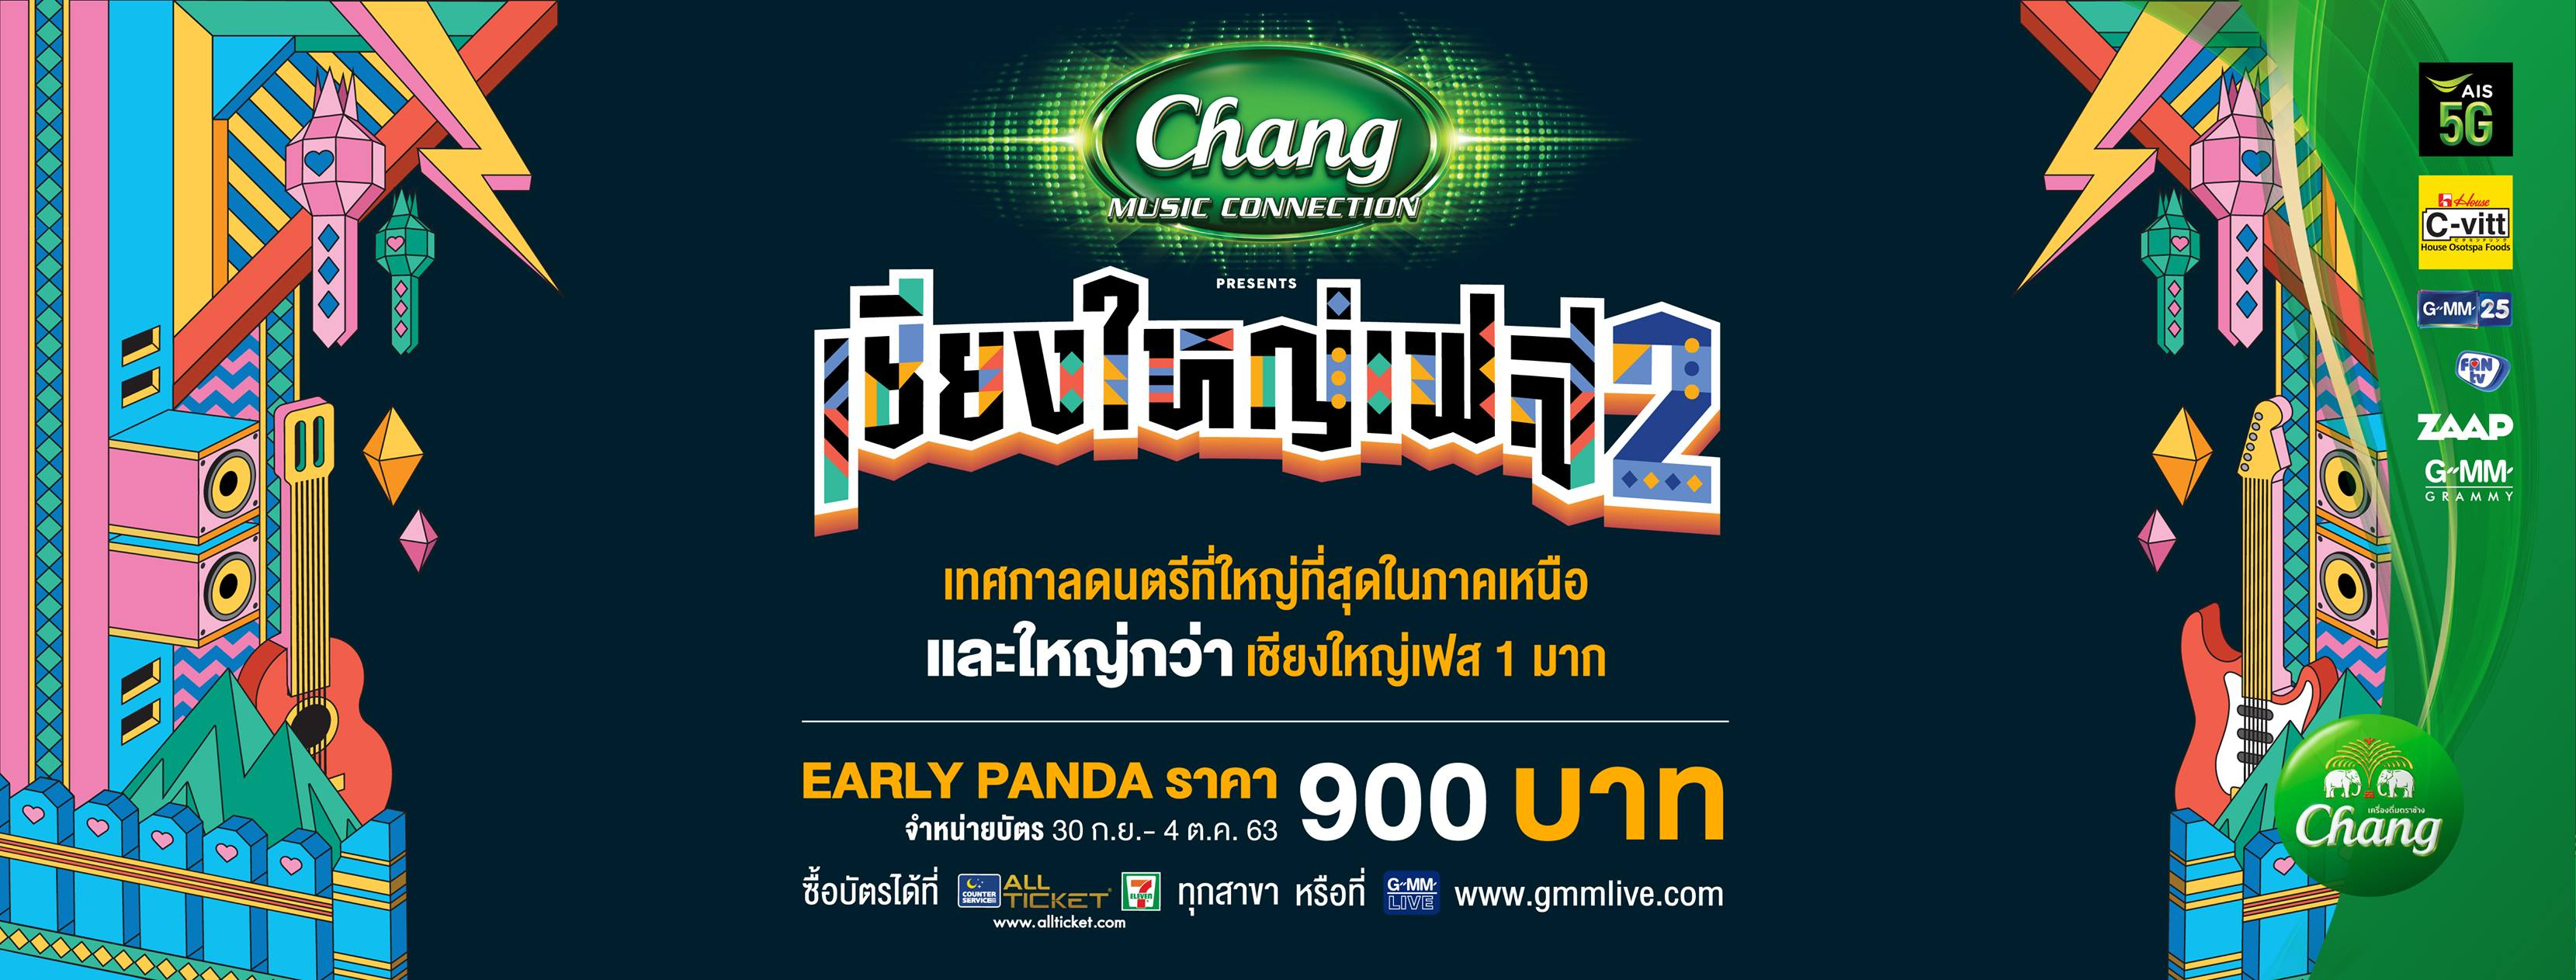 Chang Music Connection Presents 2